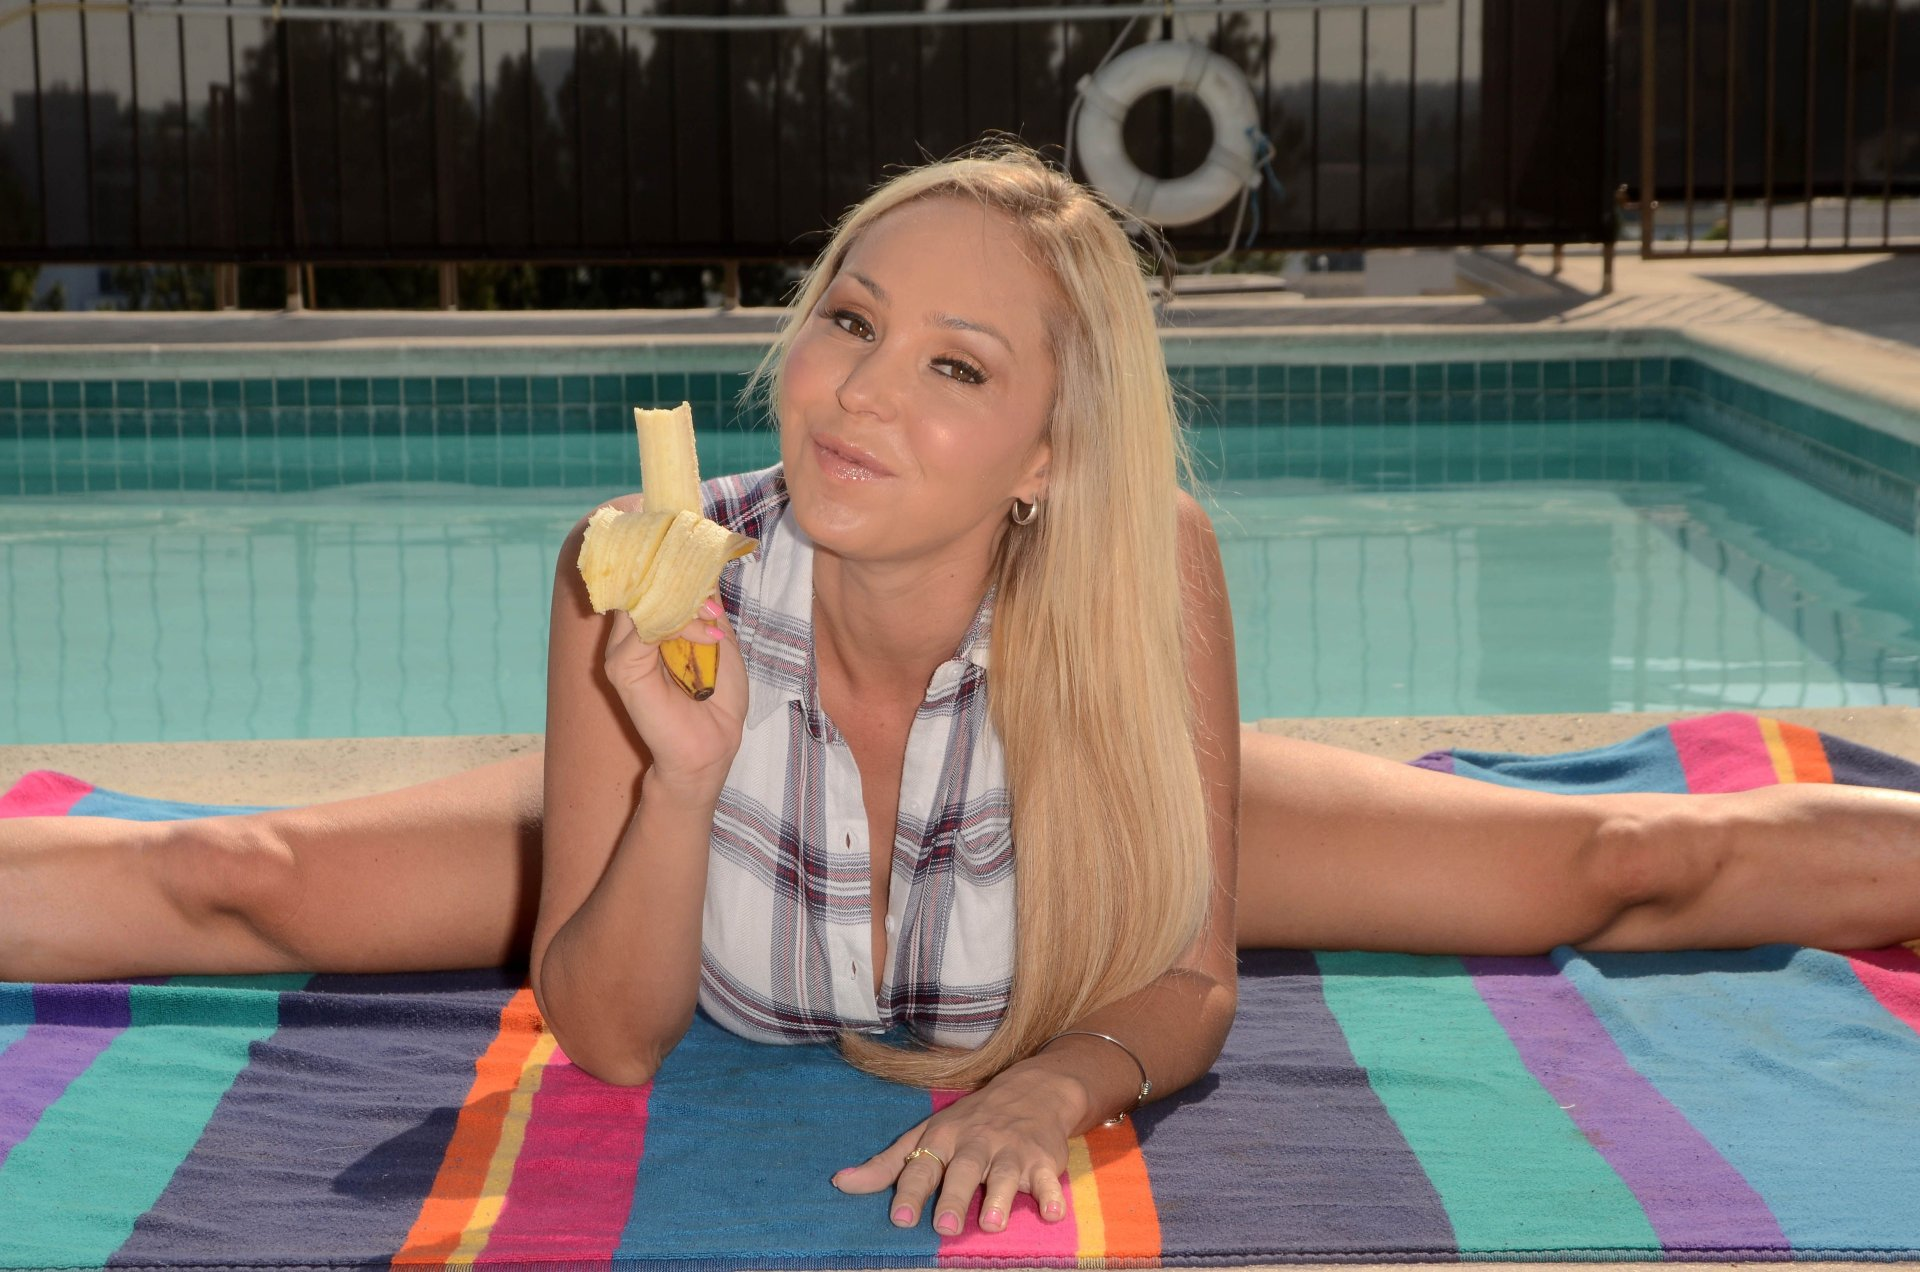 Mary carey 02 - 1 part 1